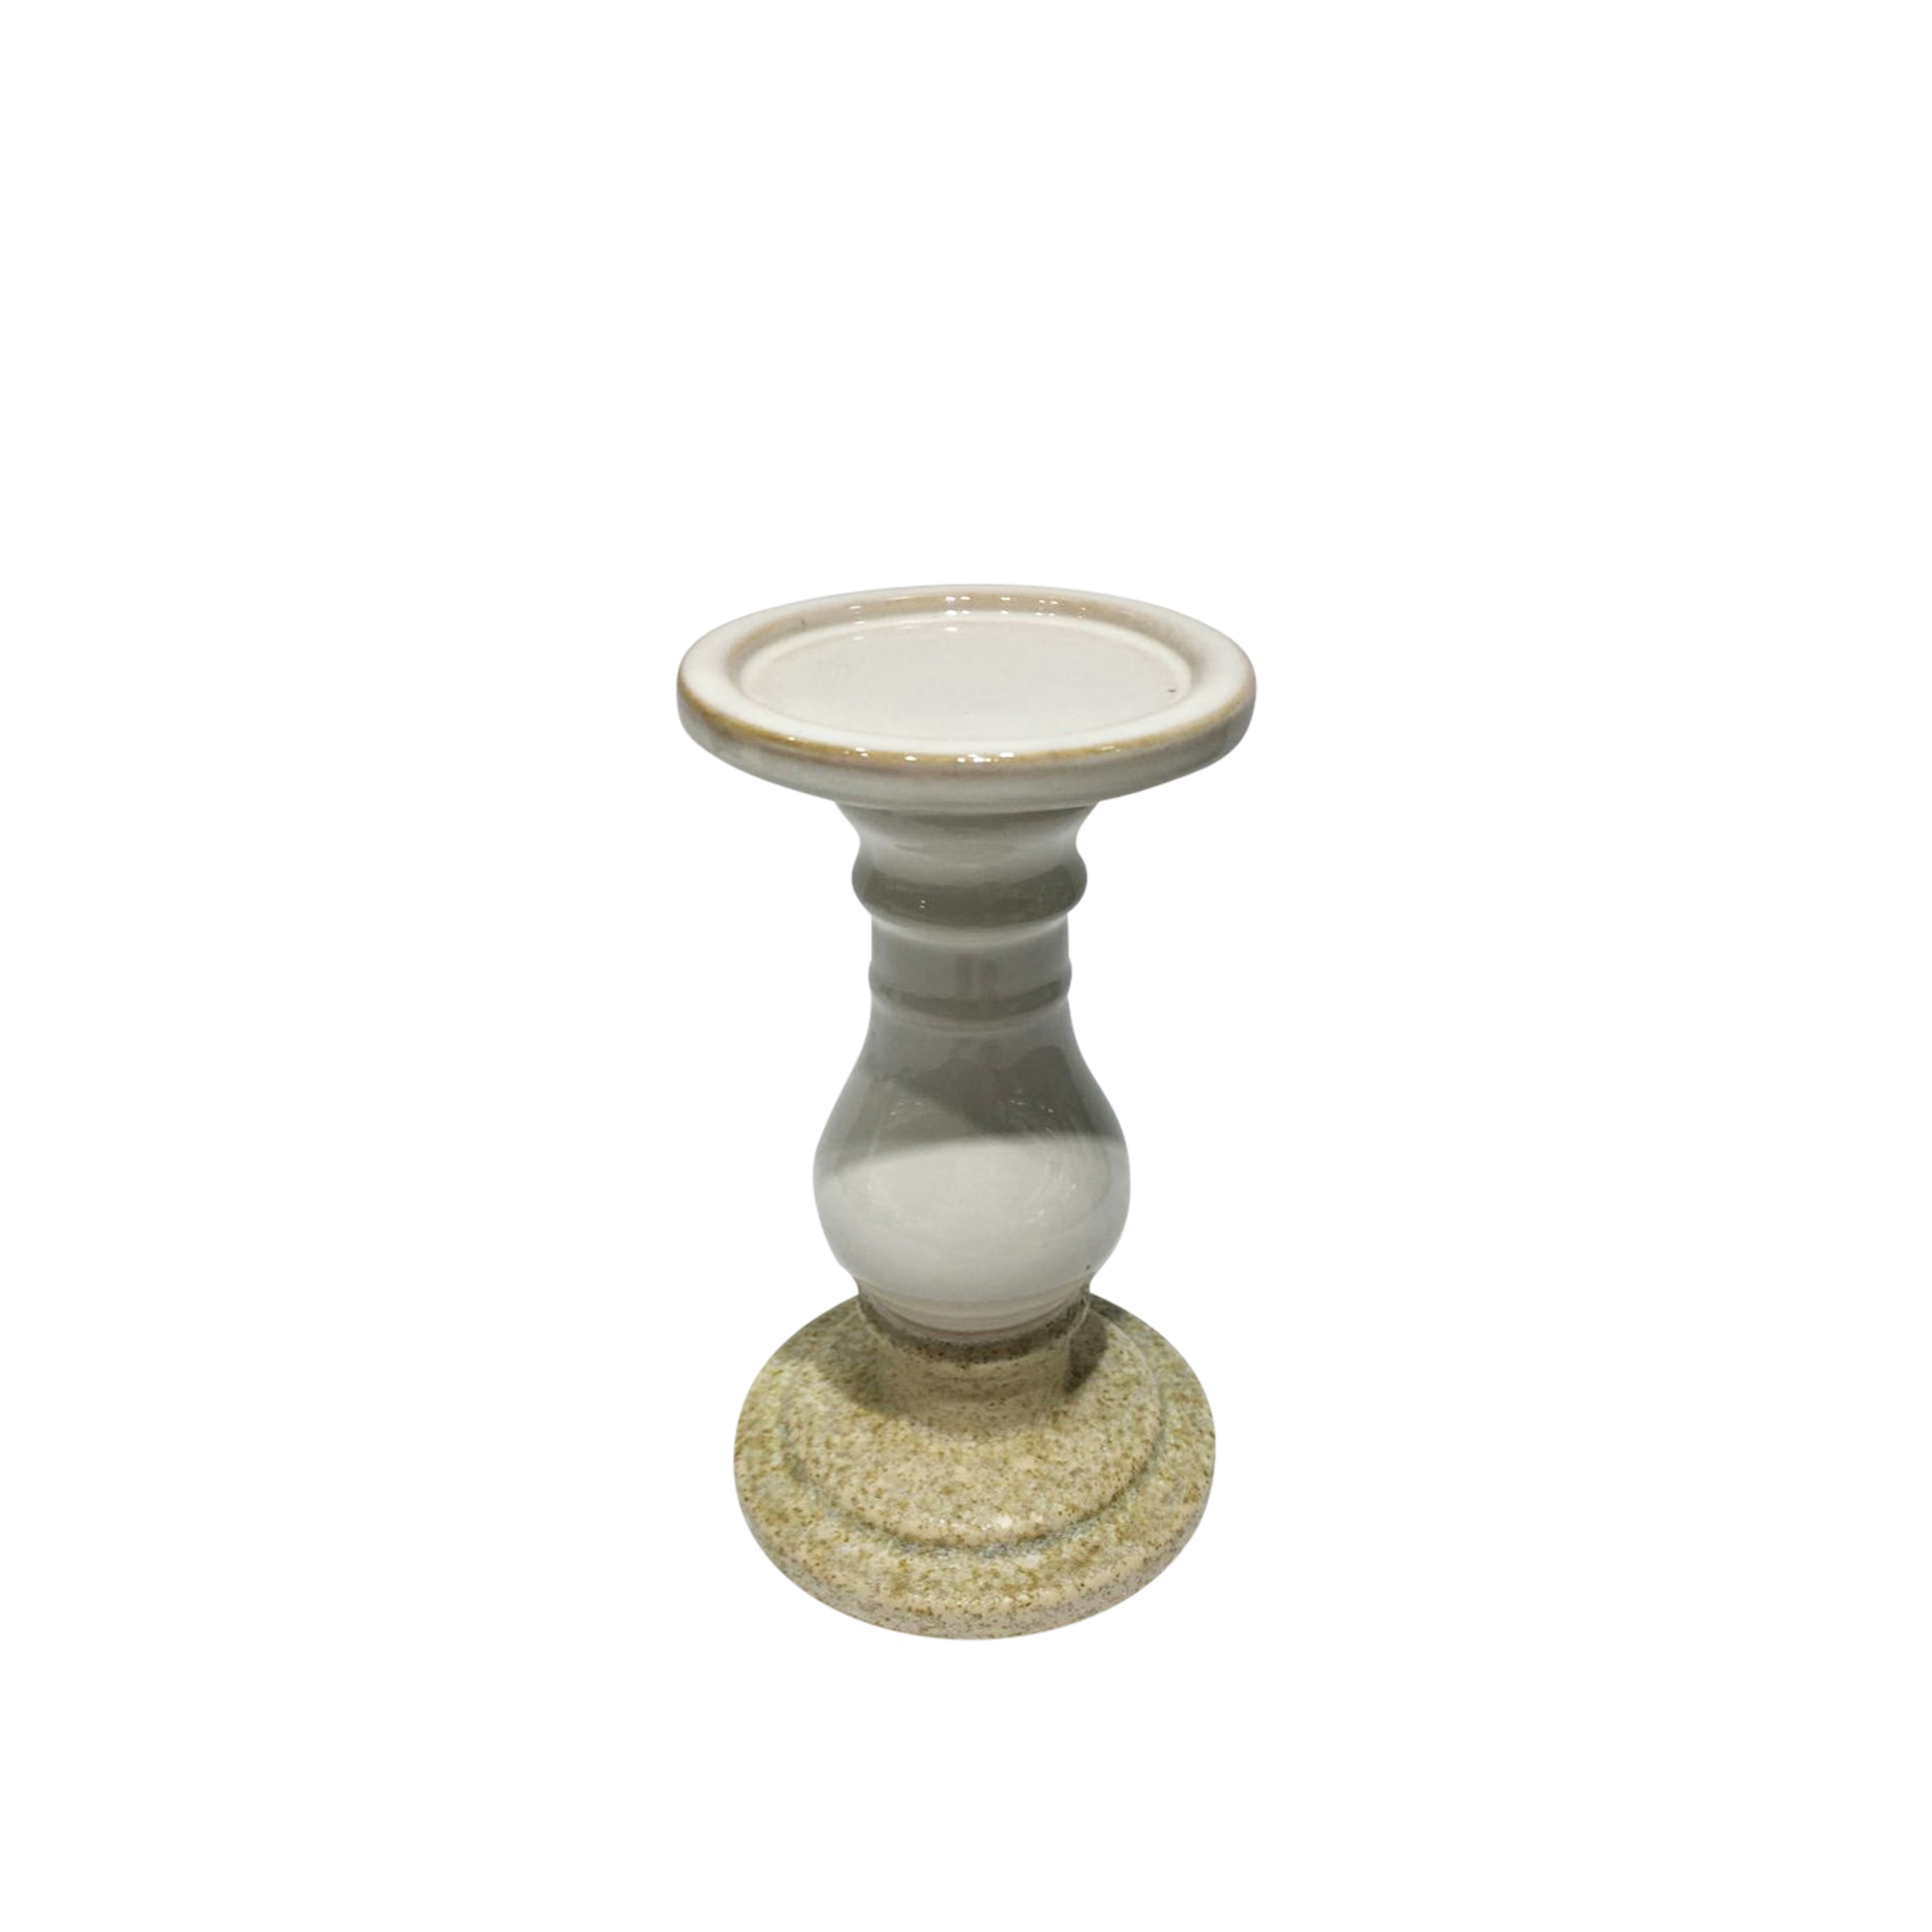 Two Tone Ceramic Candle Holder In Pedestal Shape, Small, White and Beige